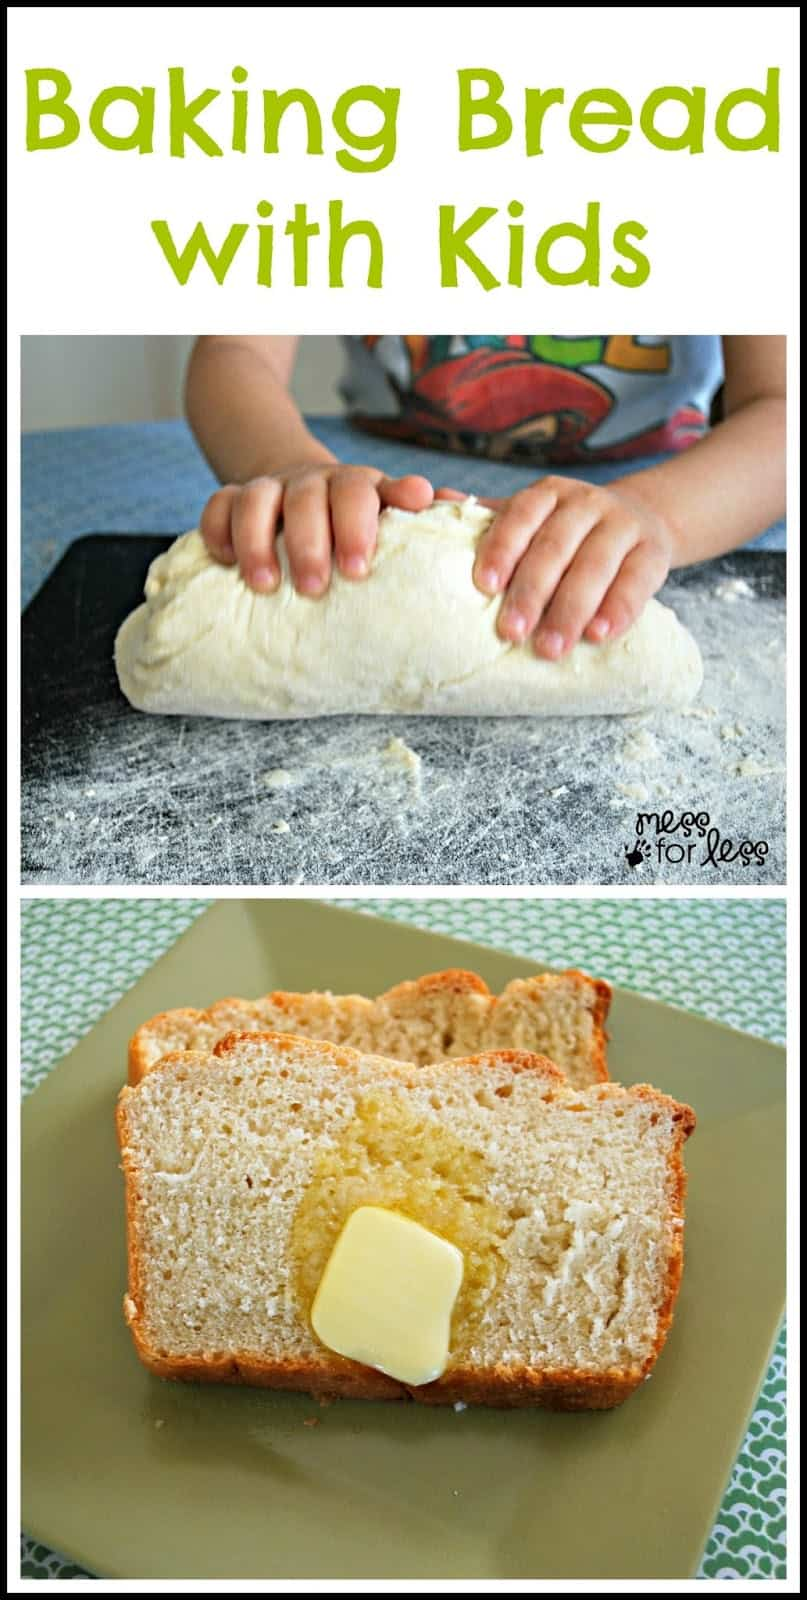 Honey bread recipe food fun friday mess for less - Fun food to make with kids ...